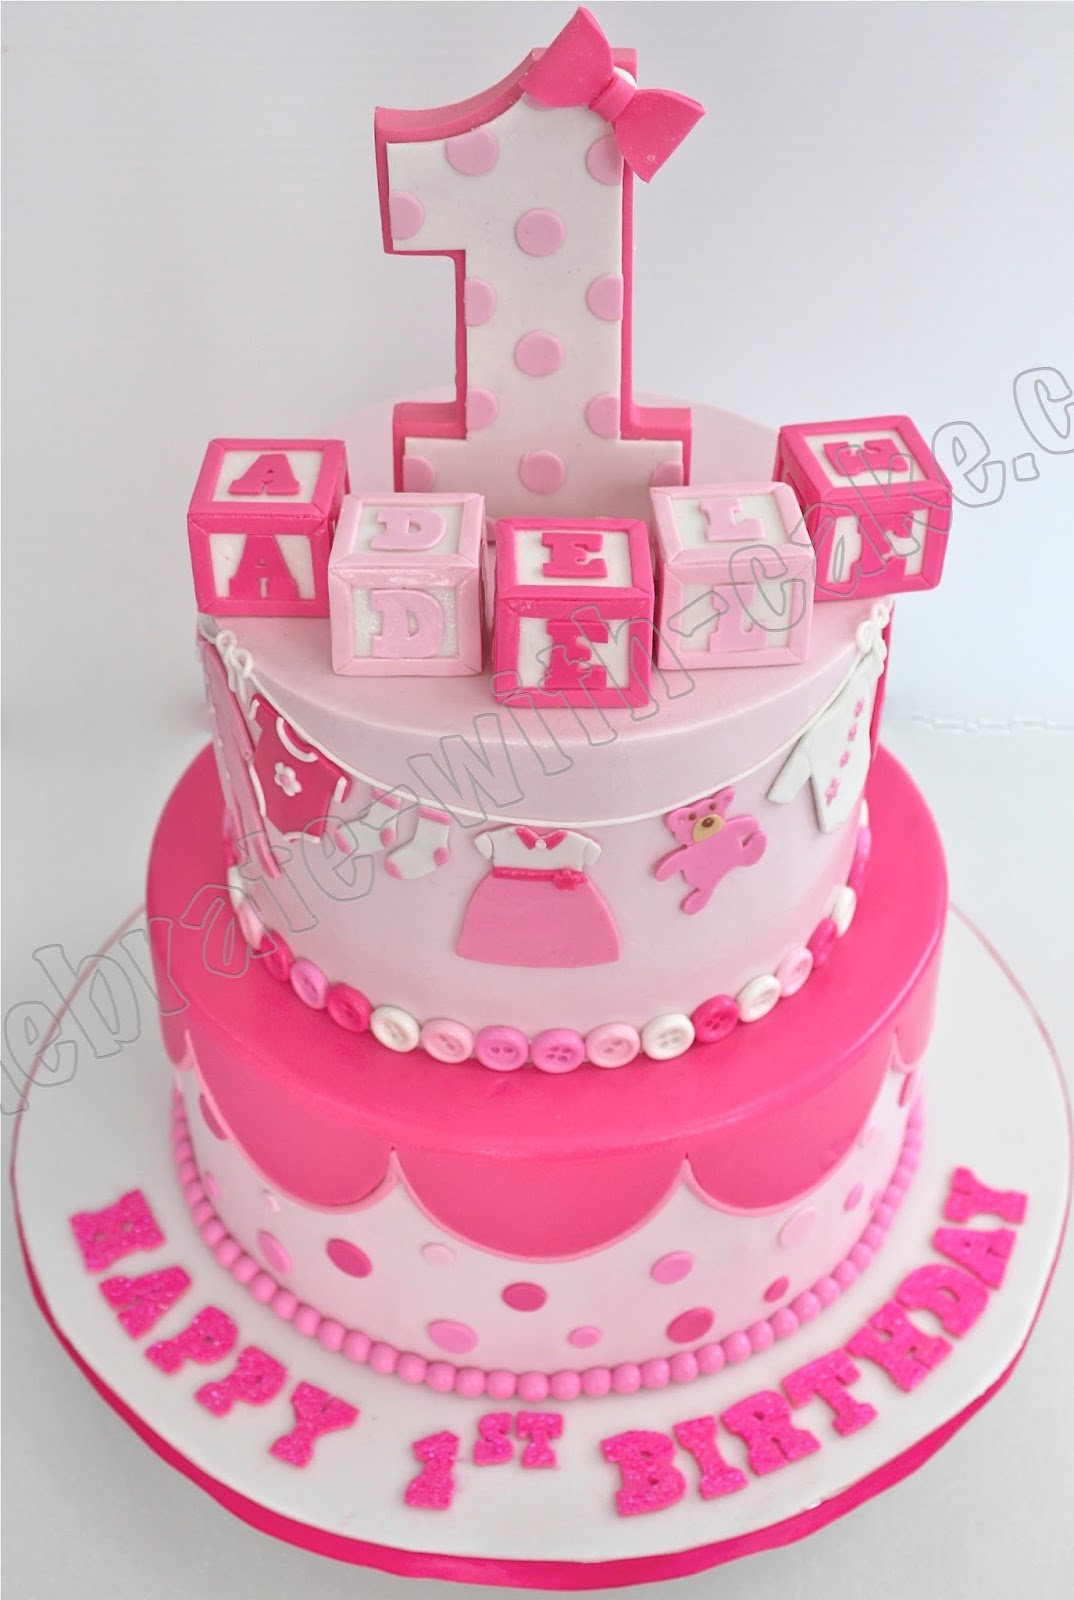 Celebrate with Cake!: 1st Birthday Baby Girl Tier Cake